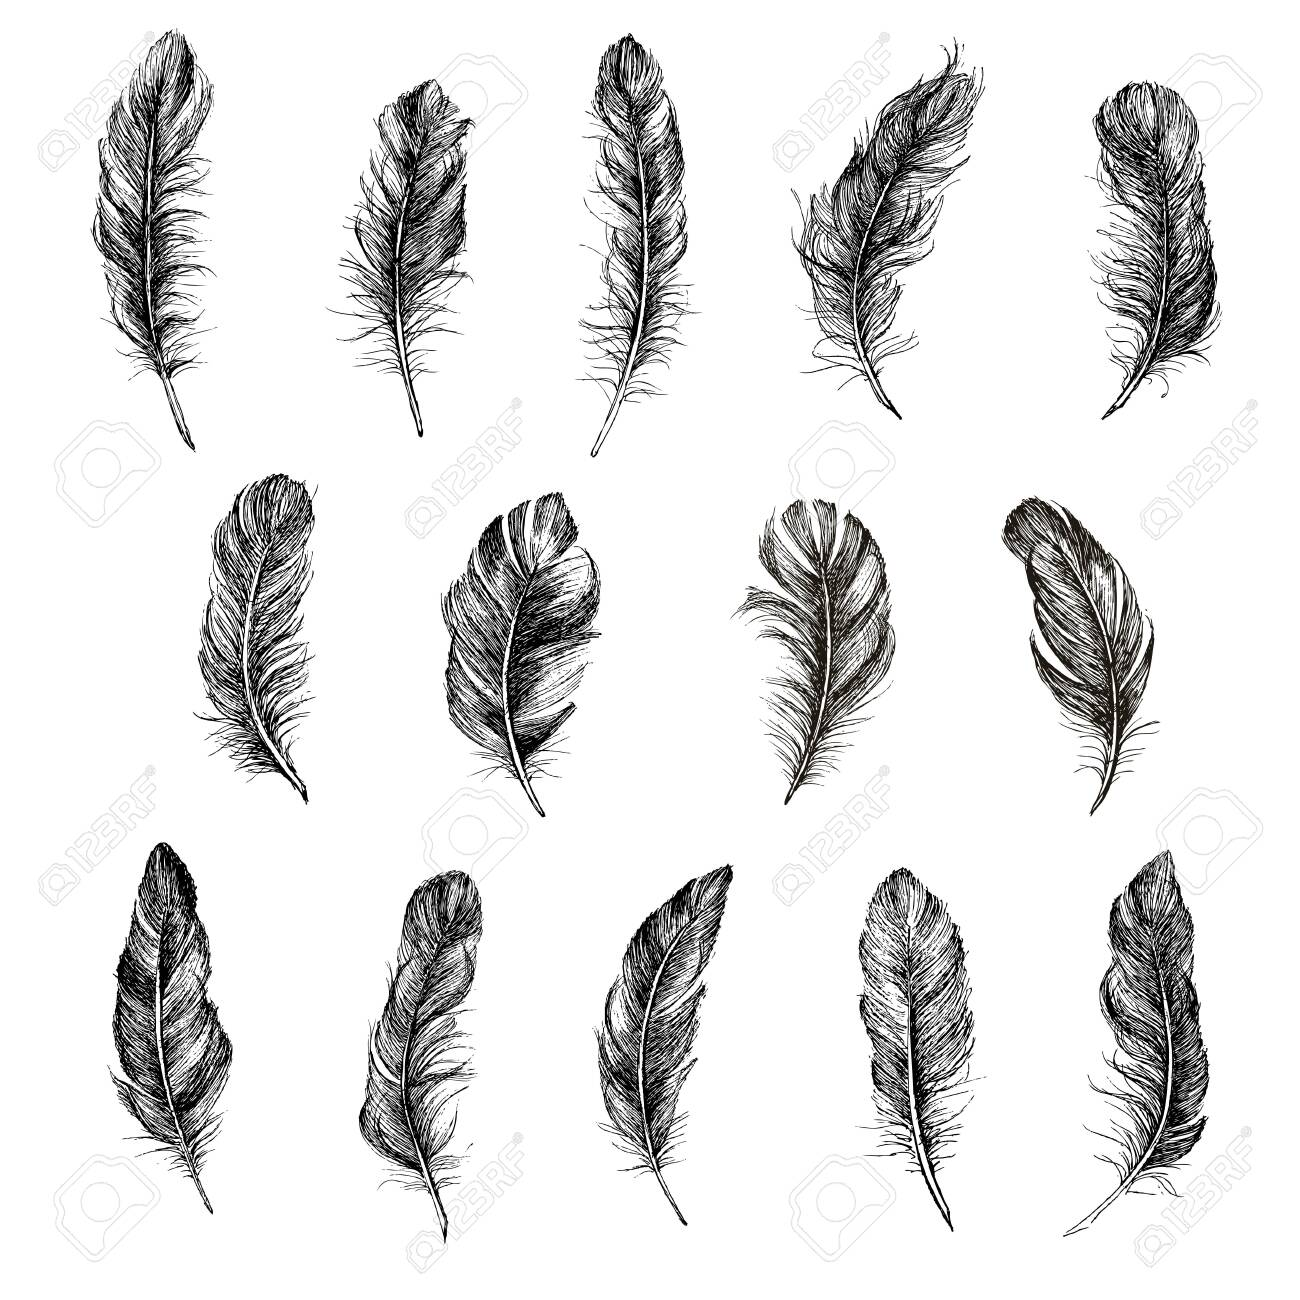 Feather icon set. Hand drawn illustration. Doodle sketch. - 151192841